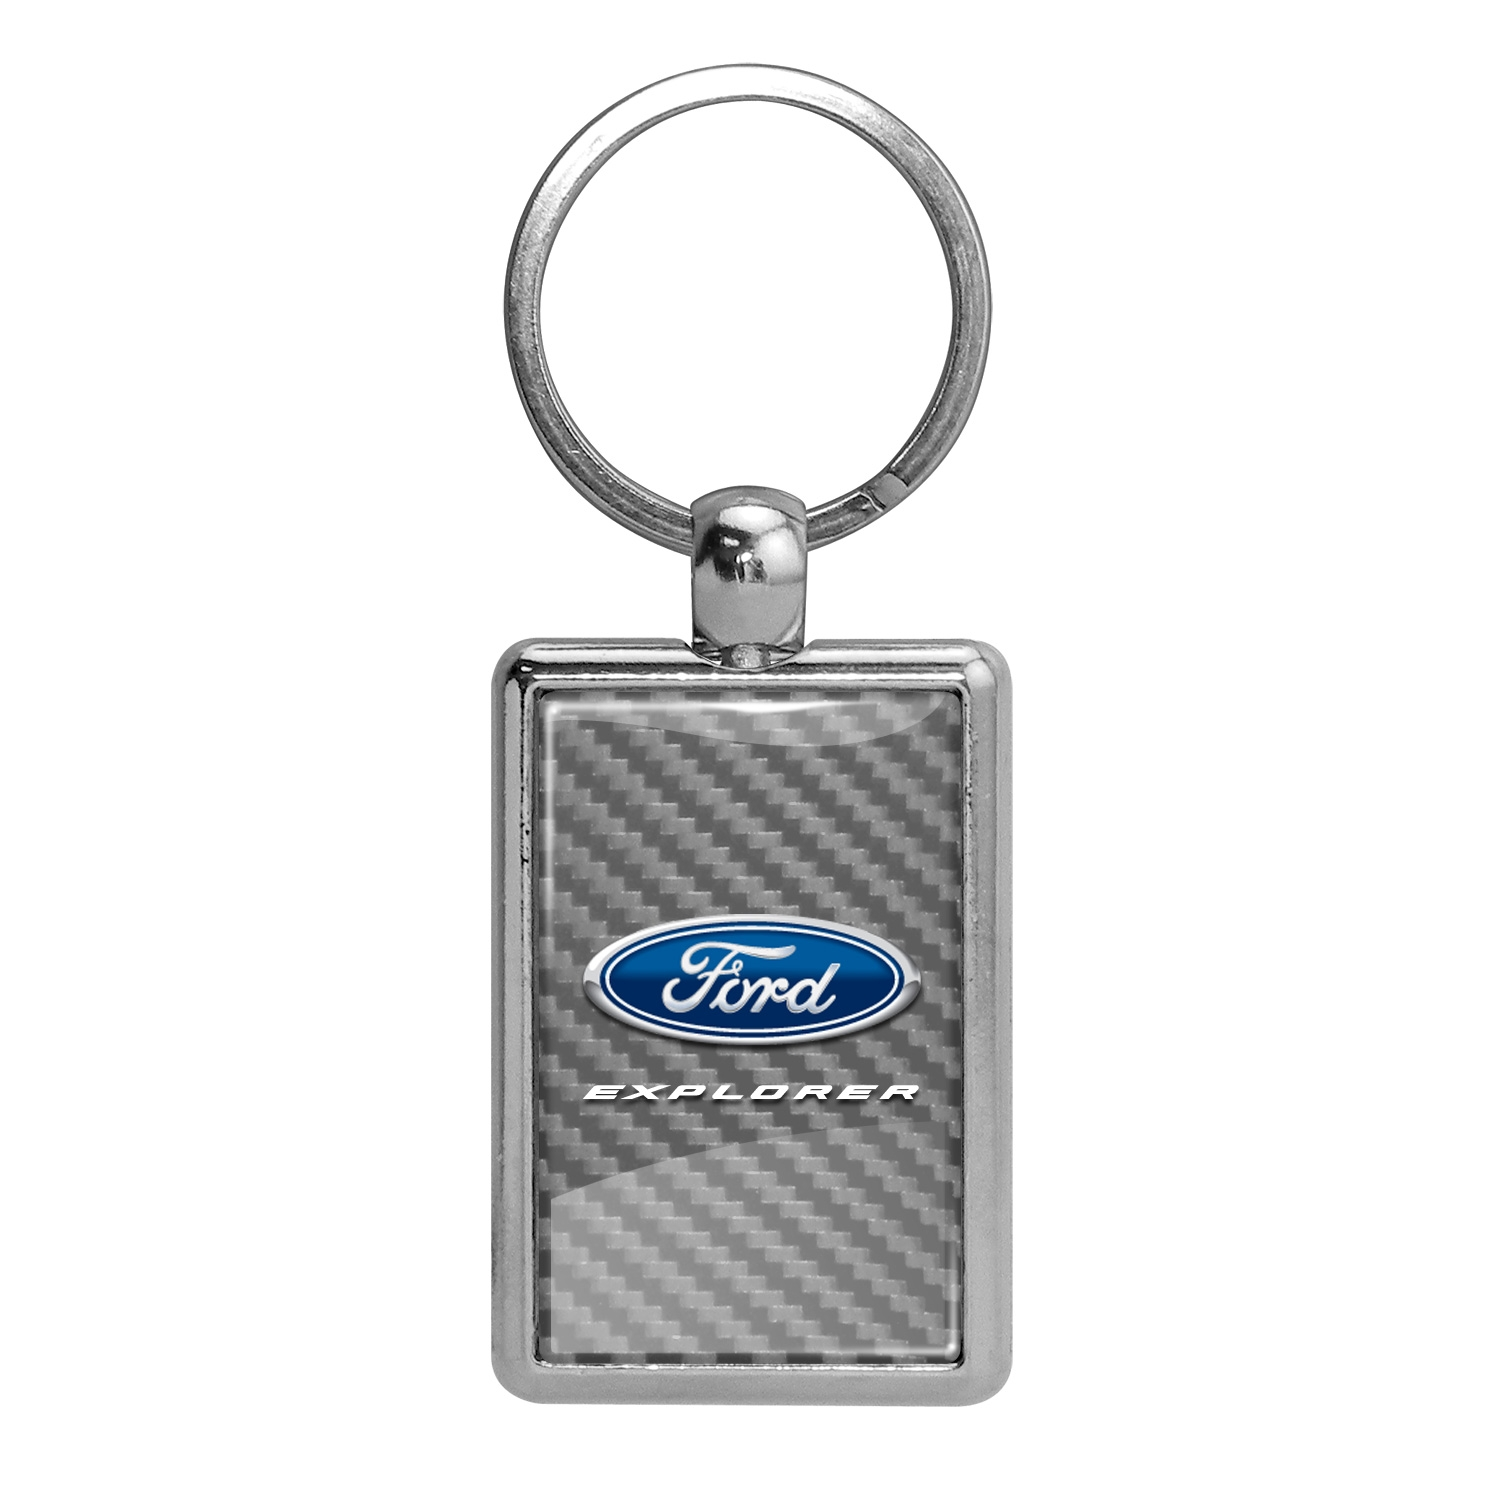 Ford Explorer Silver Carbon Fiber Backing Brush Rectangle Metal Key Chain